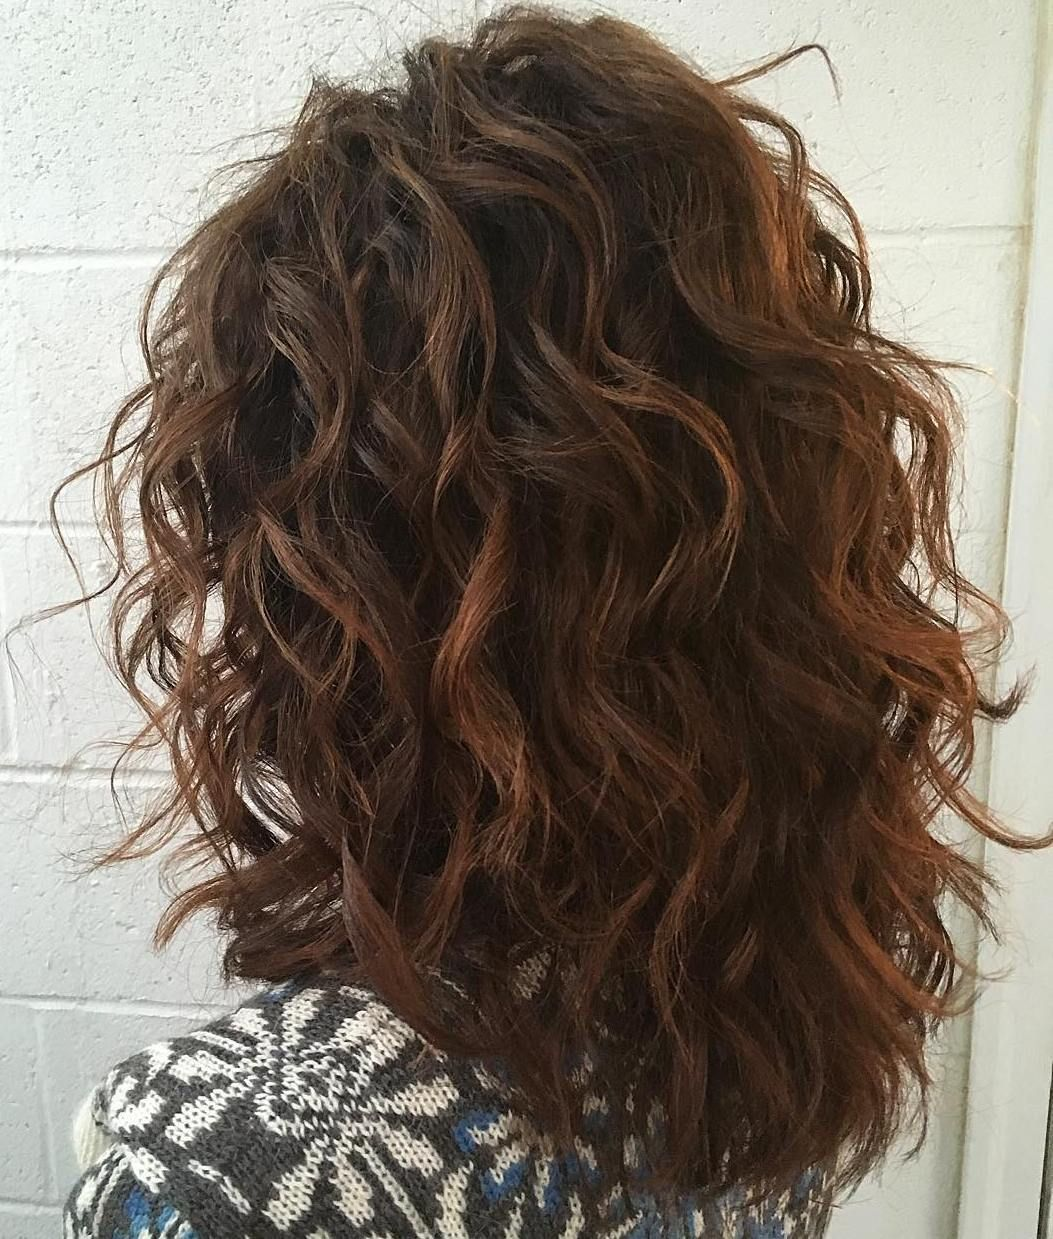 Long curly hair for men long hair inspiration long natural hair - Mid Length Curly Layered Haircut Most Of This Site Features Models Who Obviously Don T Have Curly Hair But This I Might Get Away With